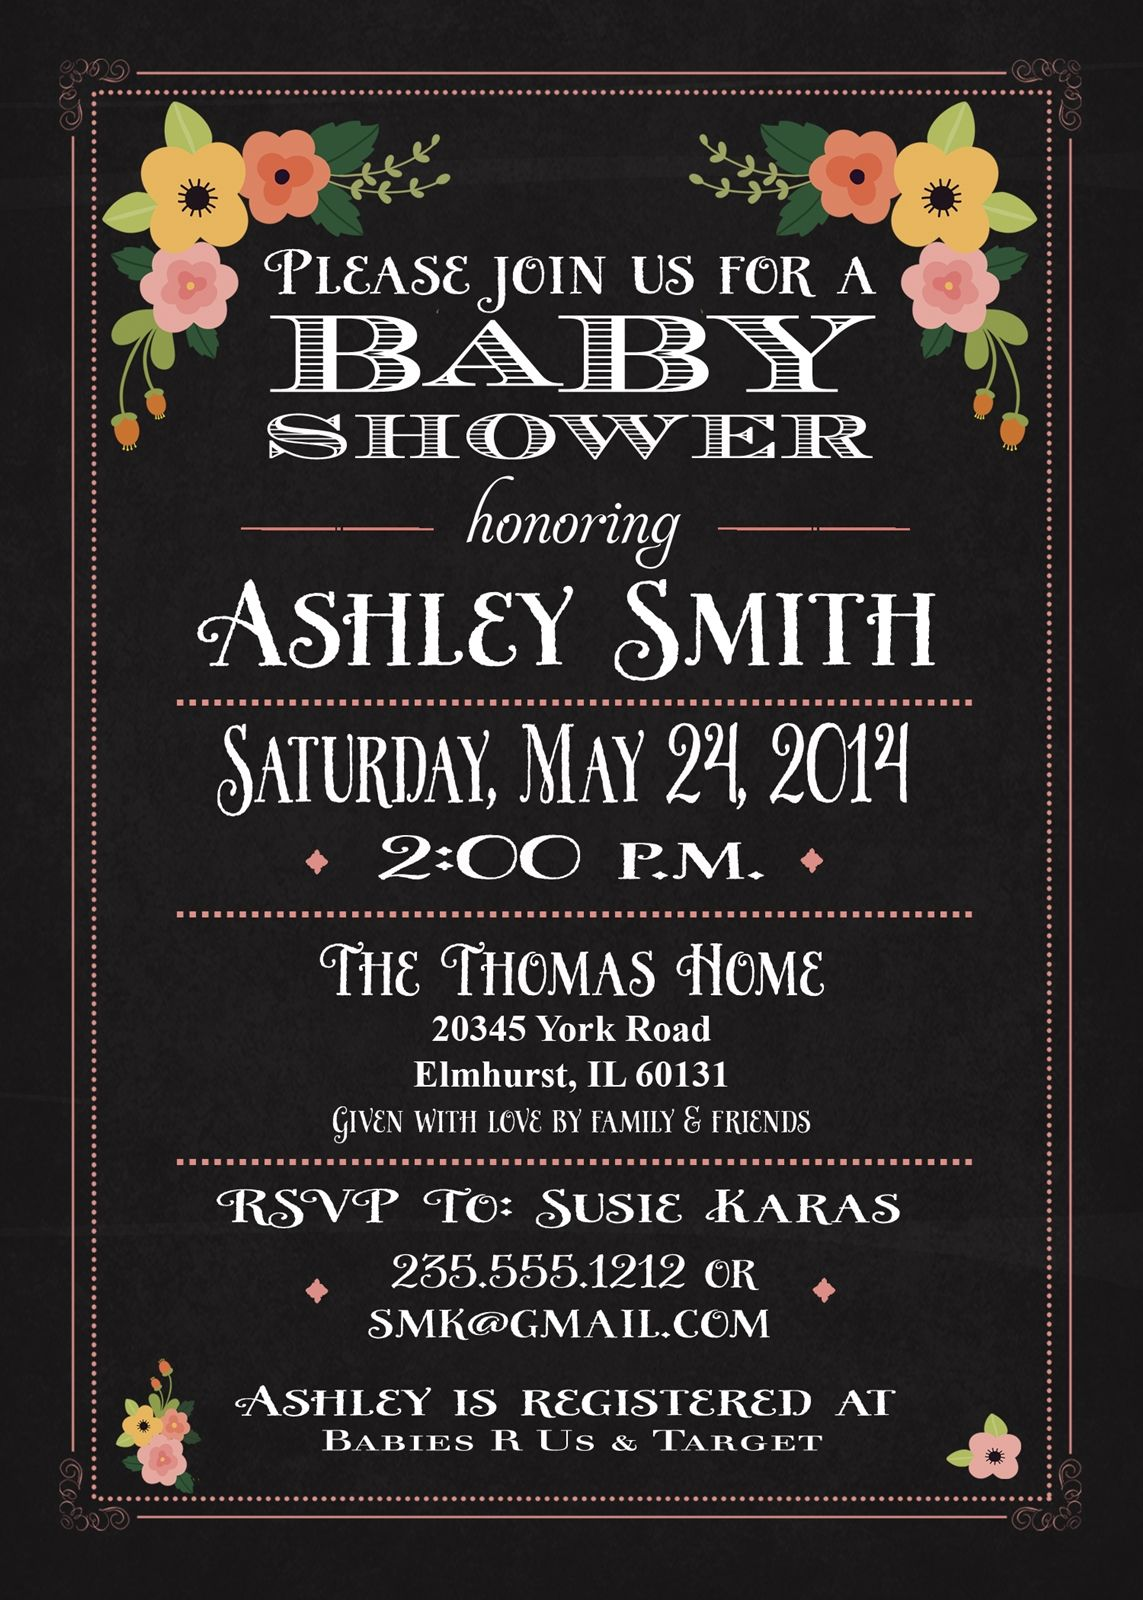 Baby shower invitation and personalized sign chalkboard coral pink chalkboard baby shower invitation and personalized sign coral pink flowers filmwisefo